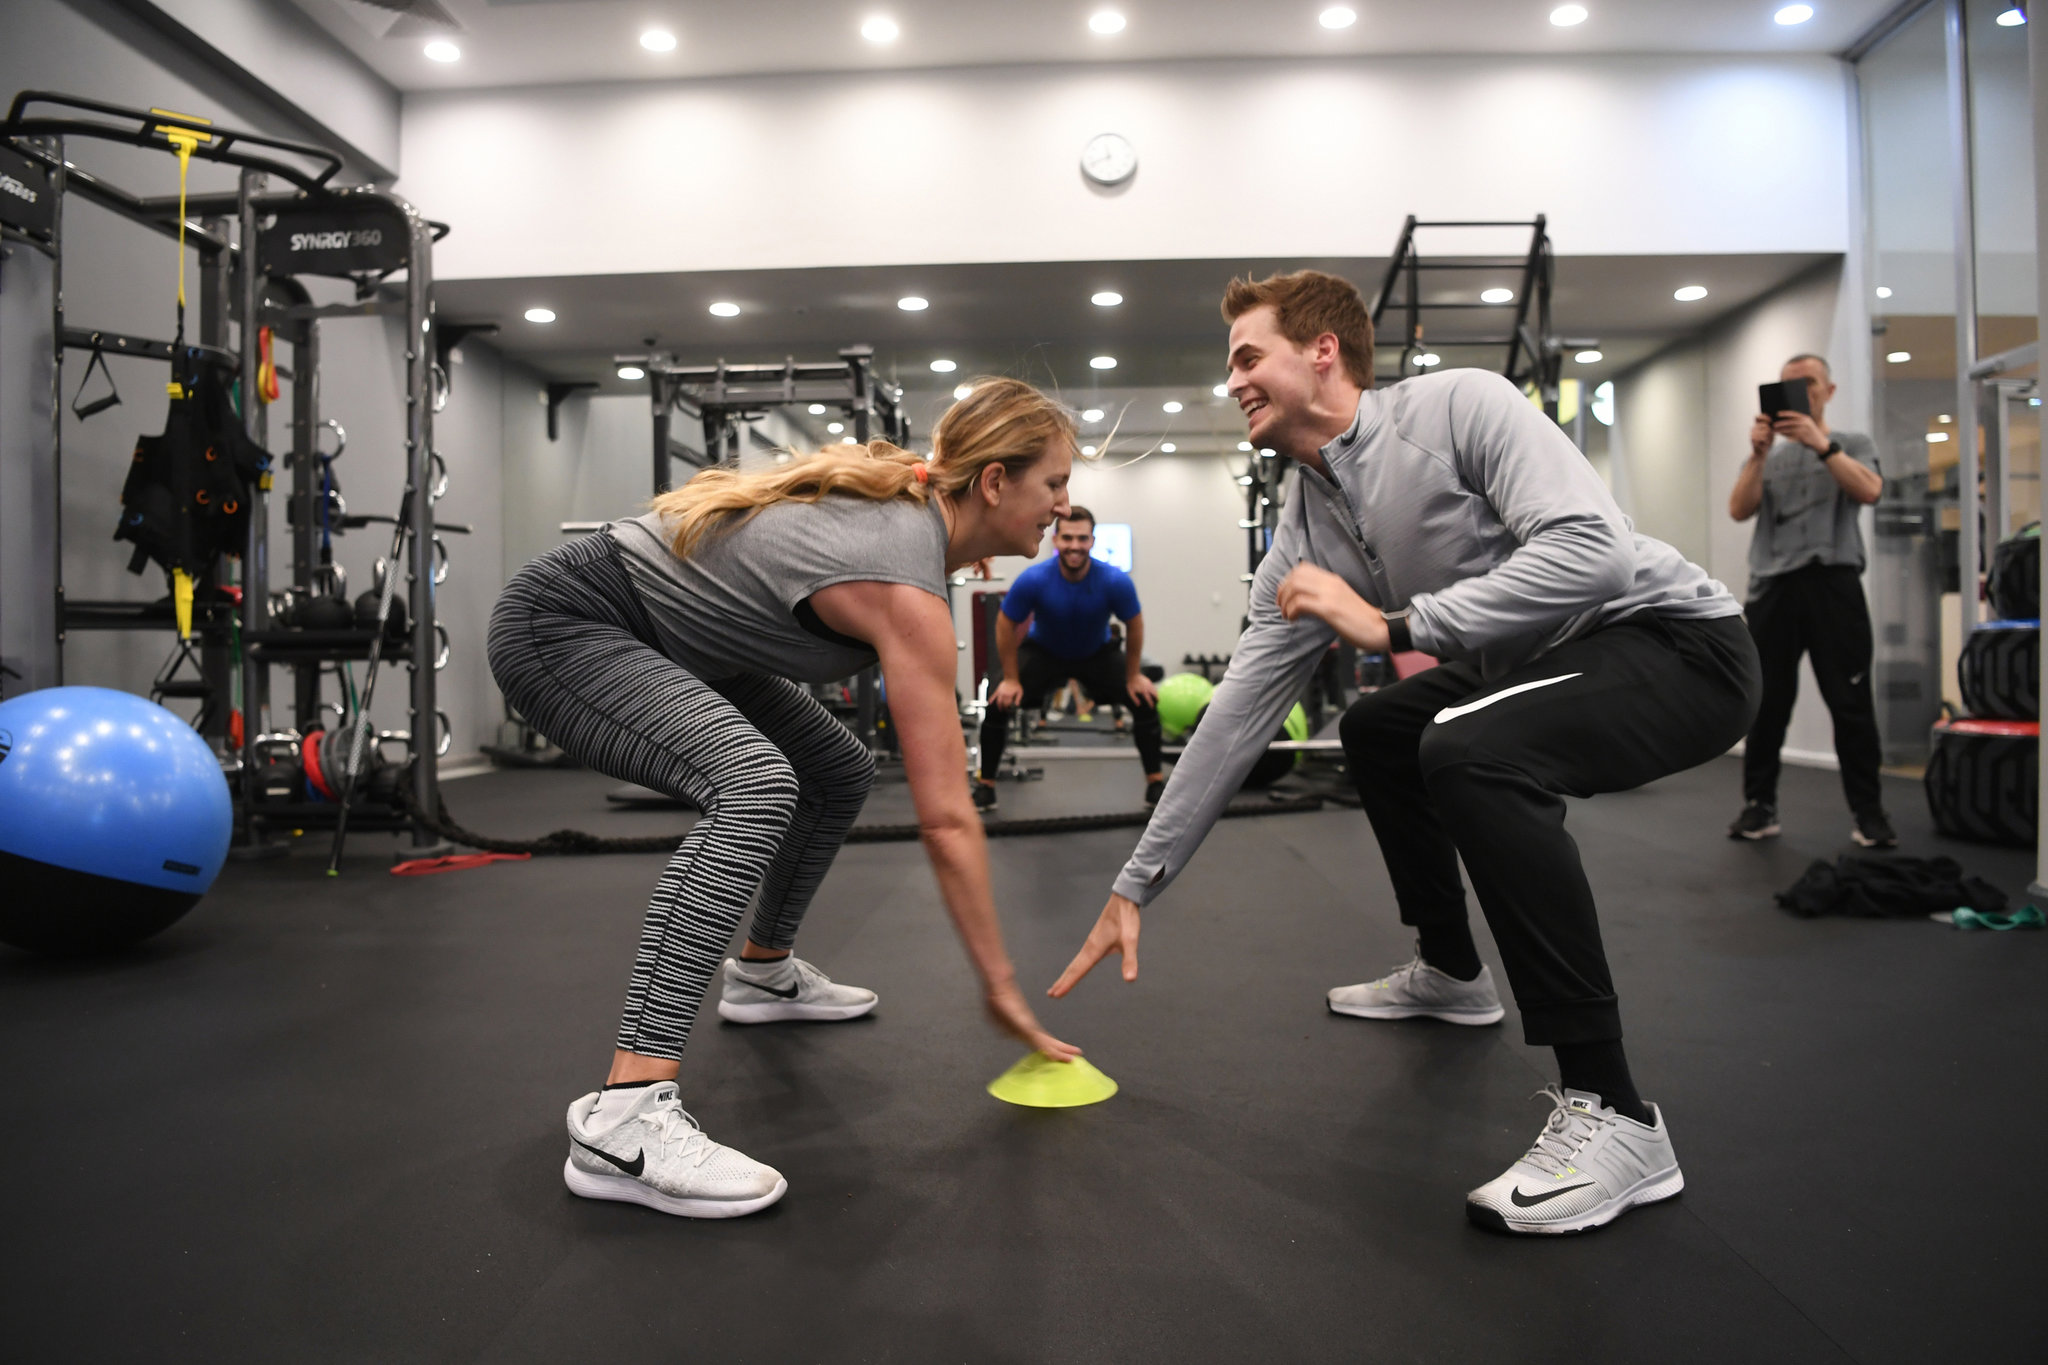 Azarenka playing a reaction game with her boyfriend, Billy McKeague, during a training session in Minsk. Once No. 1, she is on an extended break after pregnancy but is determined to rise again. Credit James Hill for The New York Times